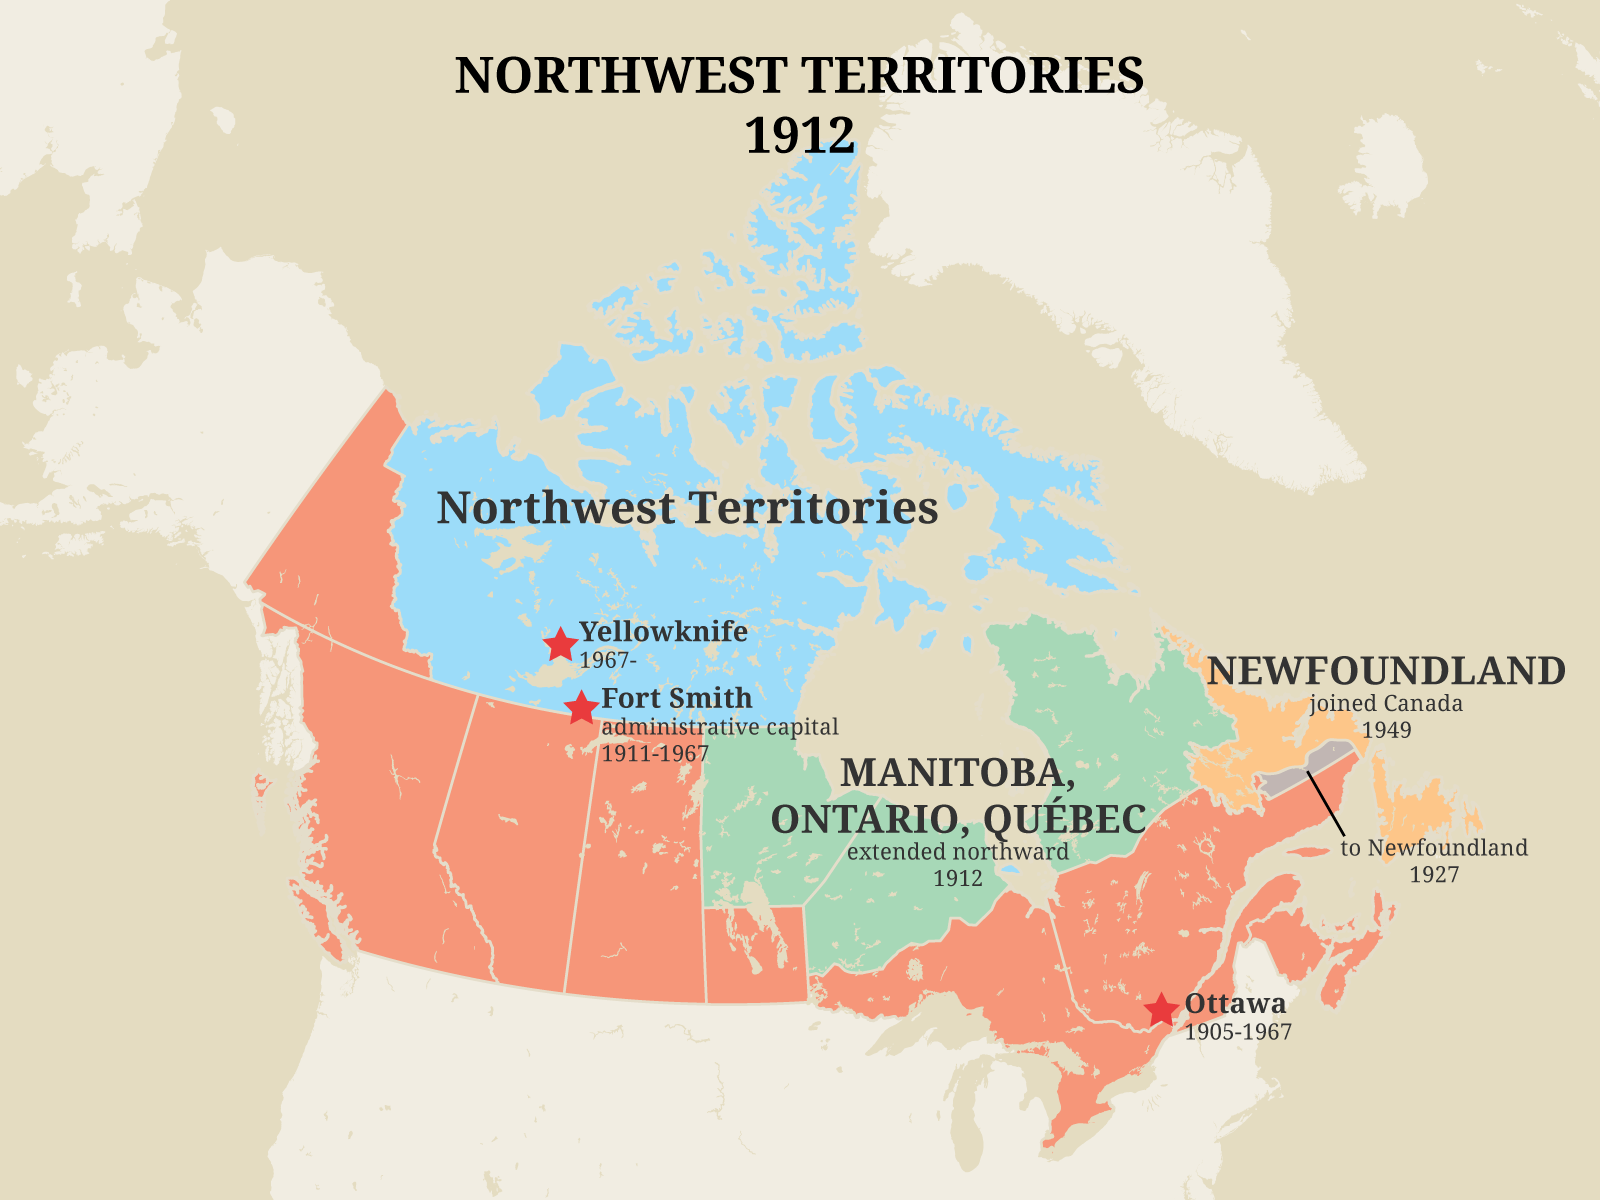 Territorial Evolution of the Northwest Territories